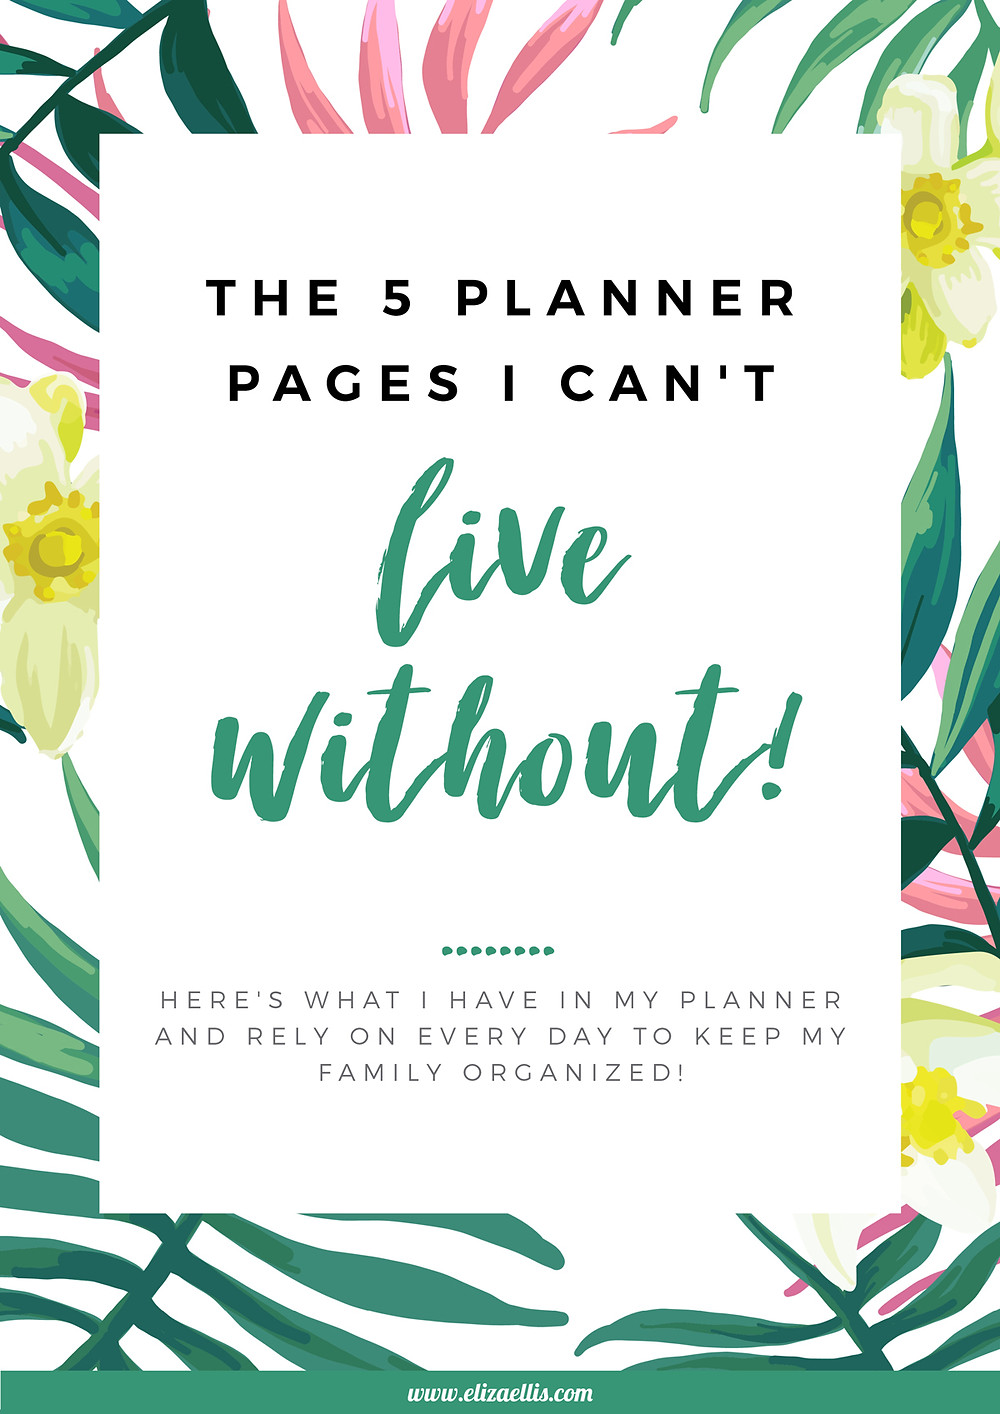 The 5 Planner Pages I Can't Live Without! // Eliza Ellis // planner, planner organization, to do list, weekly planner, daily planner, planner ideas, planner printables, printables, organization ideas, organizing ideas, organizing ideas for the home, free printables, free printable planners, housework planner, chore chart, password keeper, home organizing tips, organizing tips